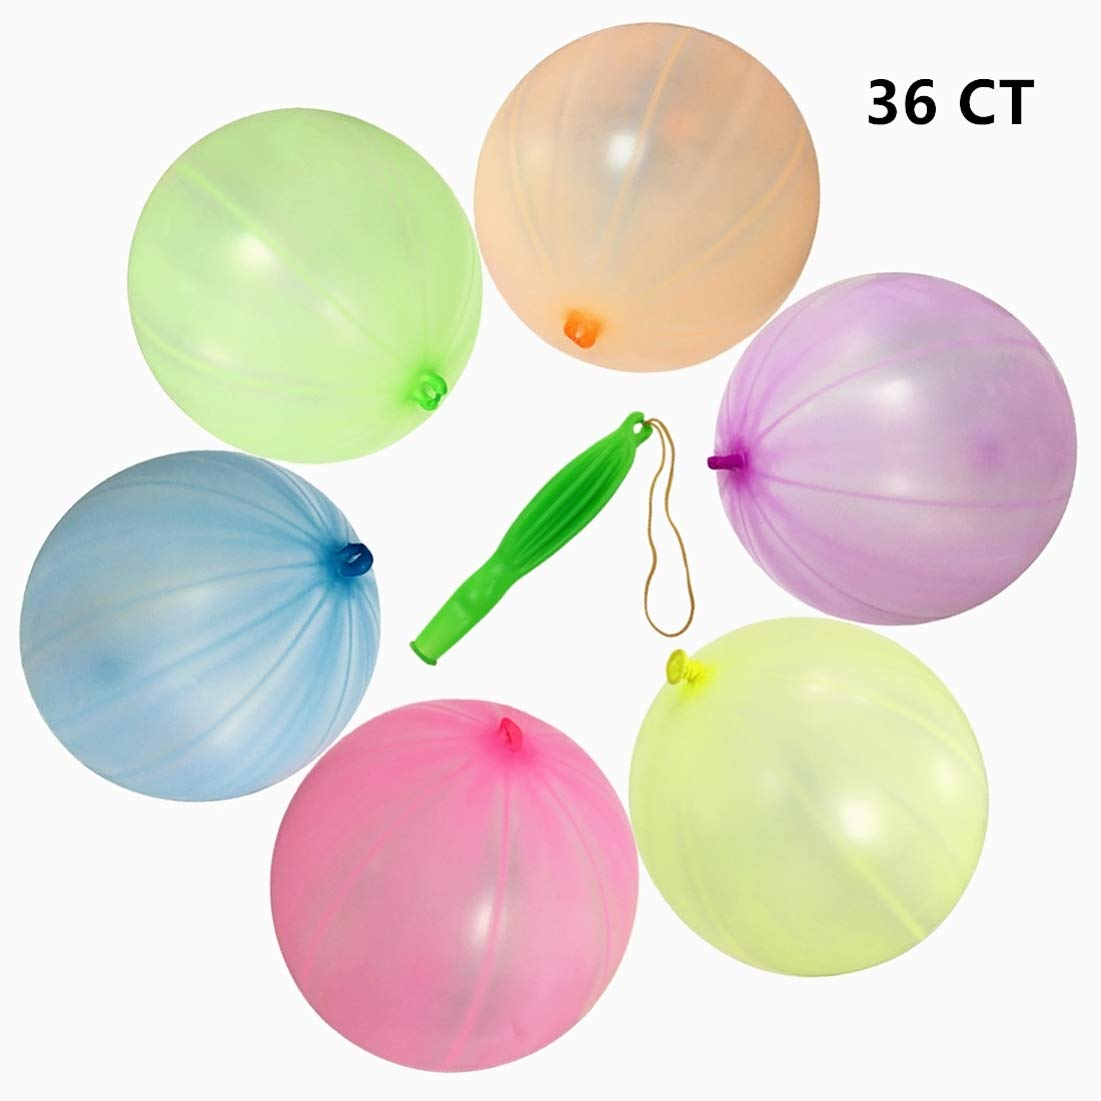 36PCS Punching Ball Balloons 12 Round Punch Balls Pure Latex Balloon for Party Decorations and Kid's Party Favors Assorted Neon Colors GuassLee